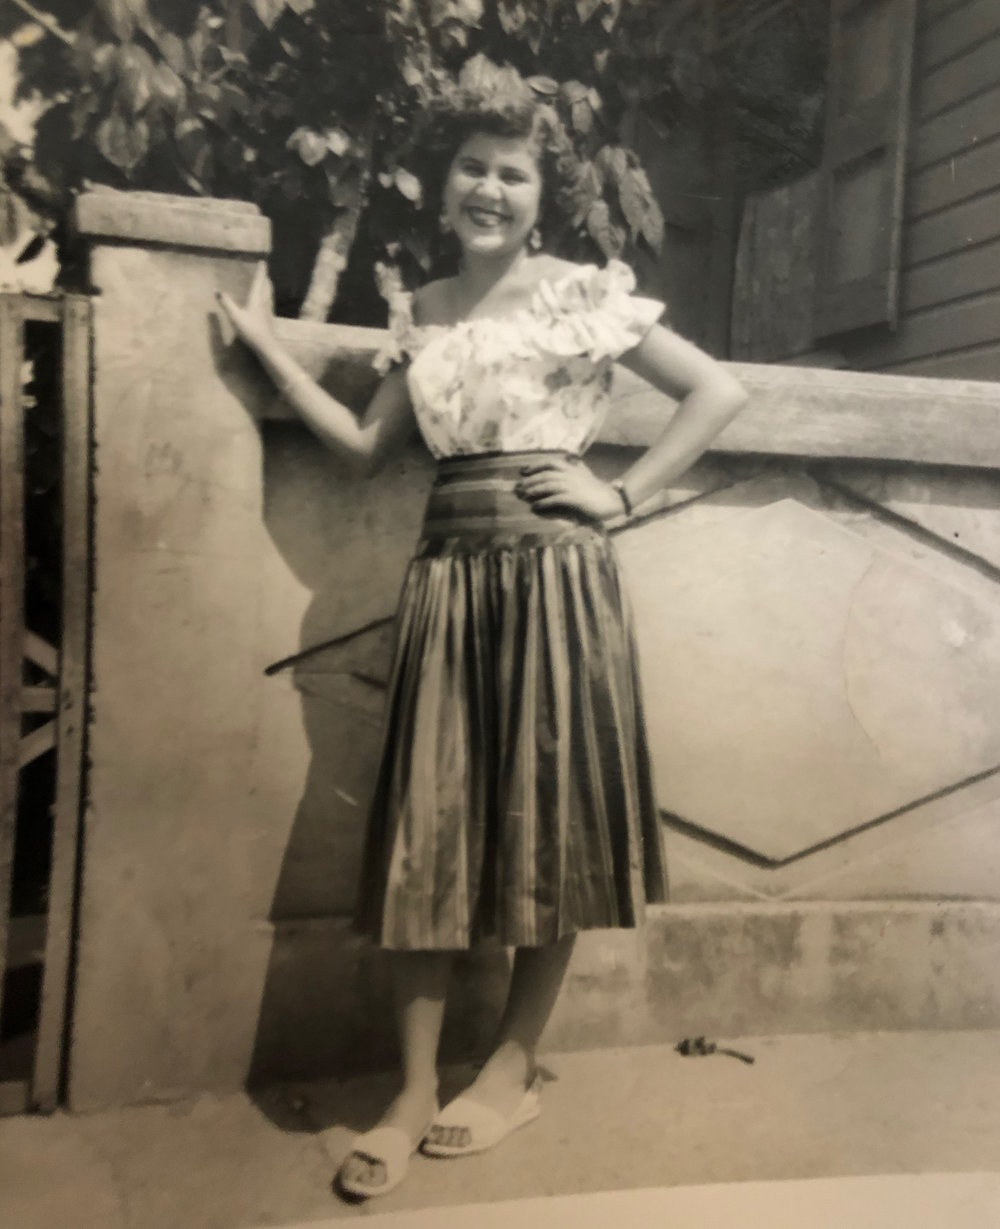 Abuela crucita who cooked to nourish and please  puerto Rico (1950's)